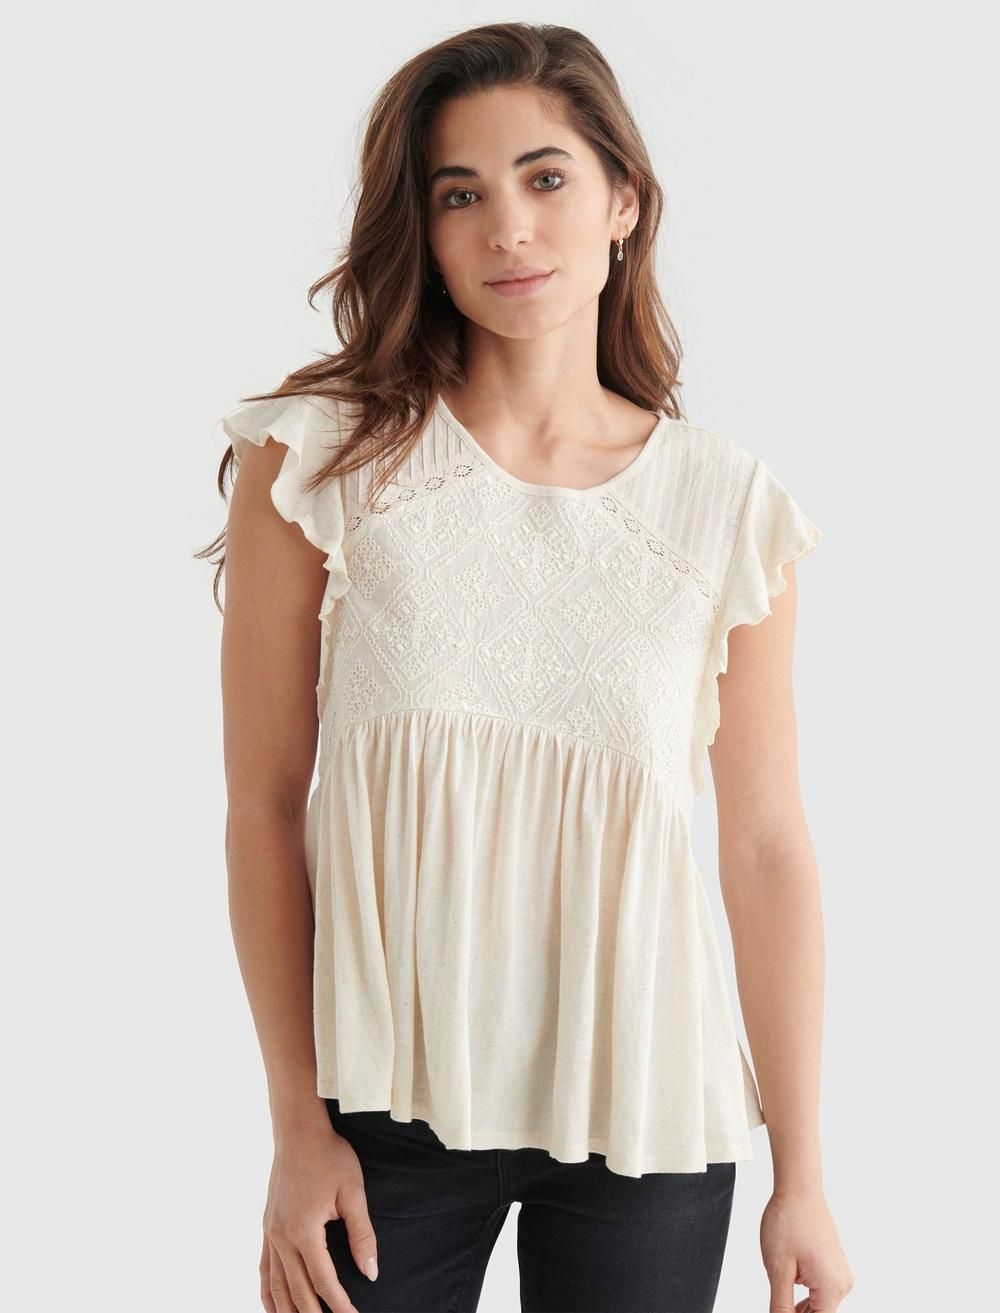 SHORT SLEEVE EMBROIDERED DOLMAN TOP, image 1